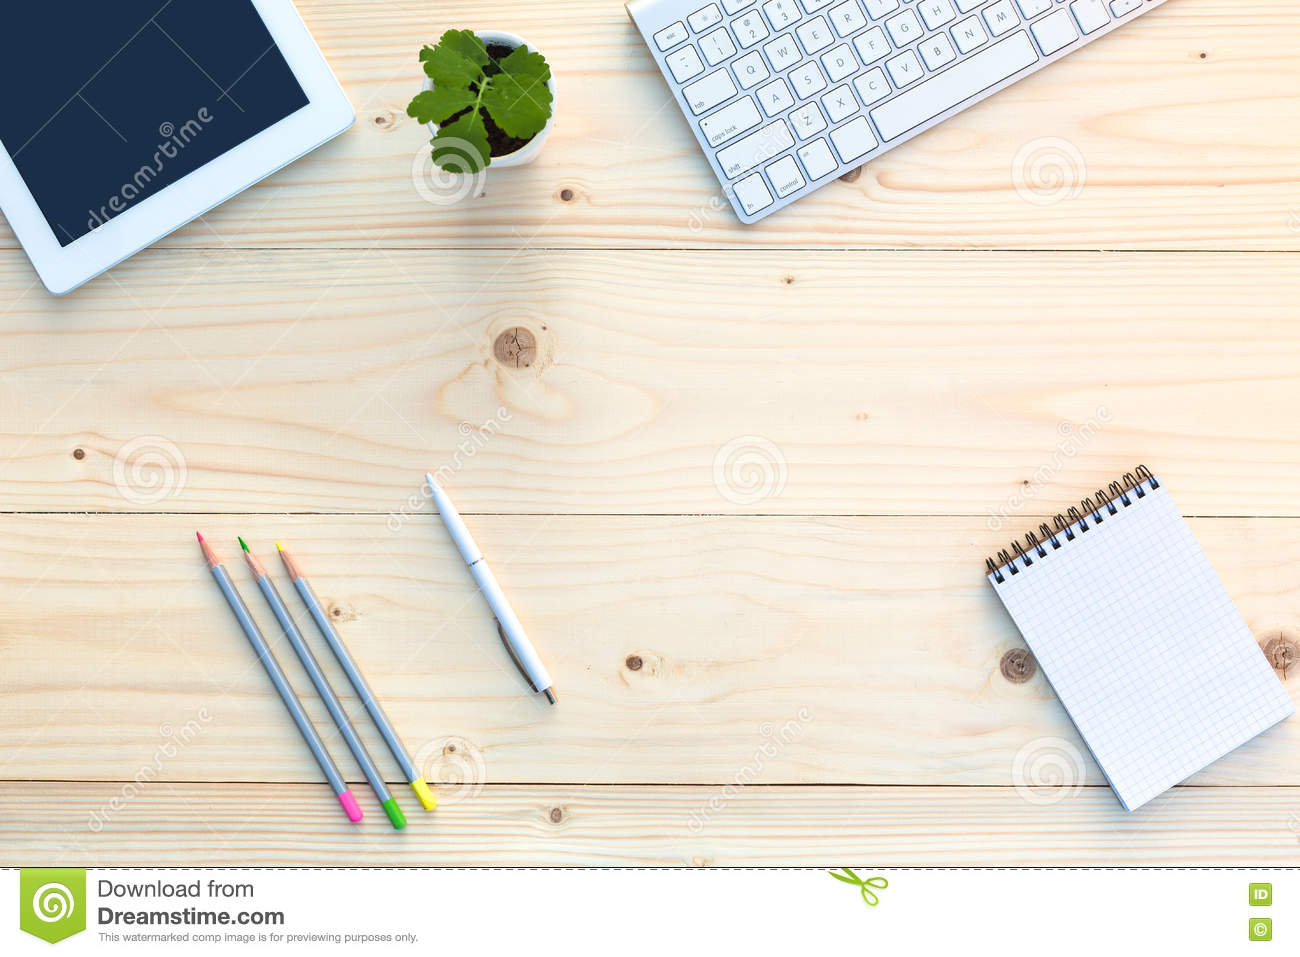 Working Place on light Wooden Desk with Stationery Electronics and Flower